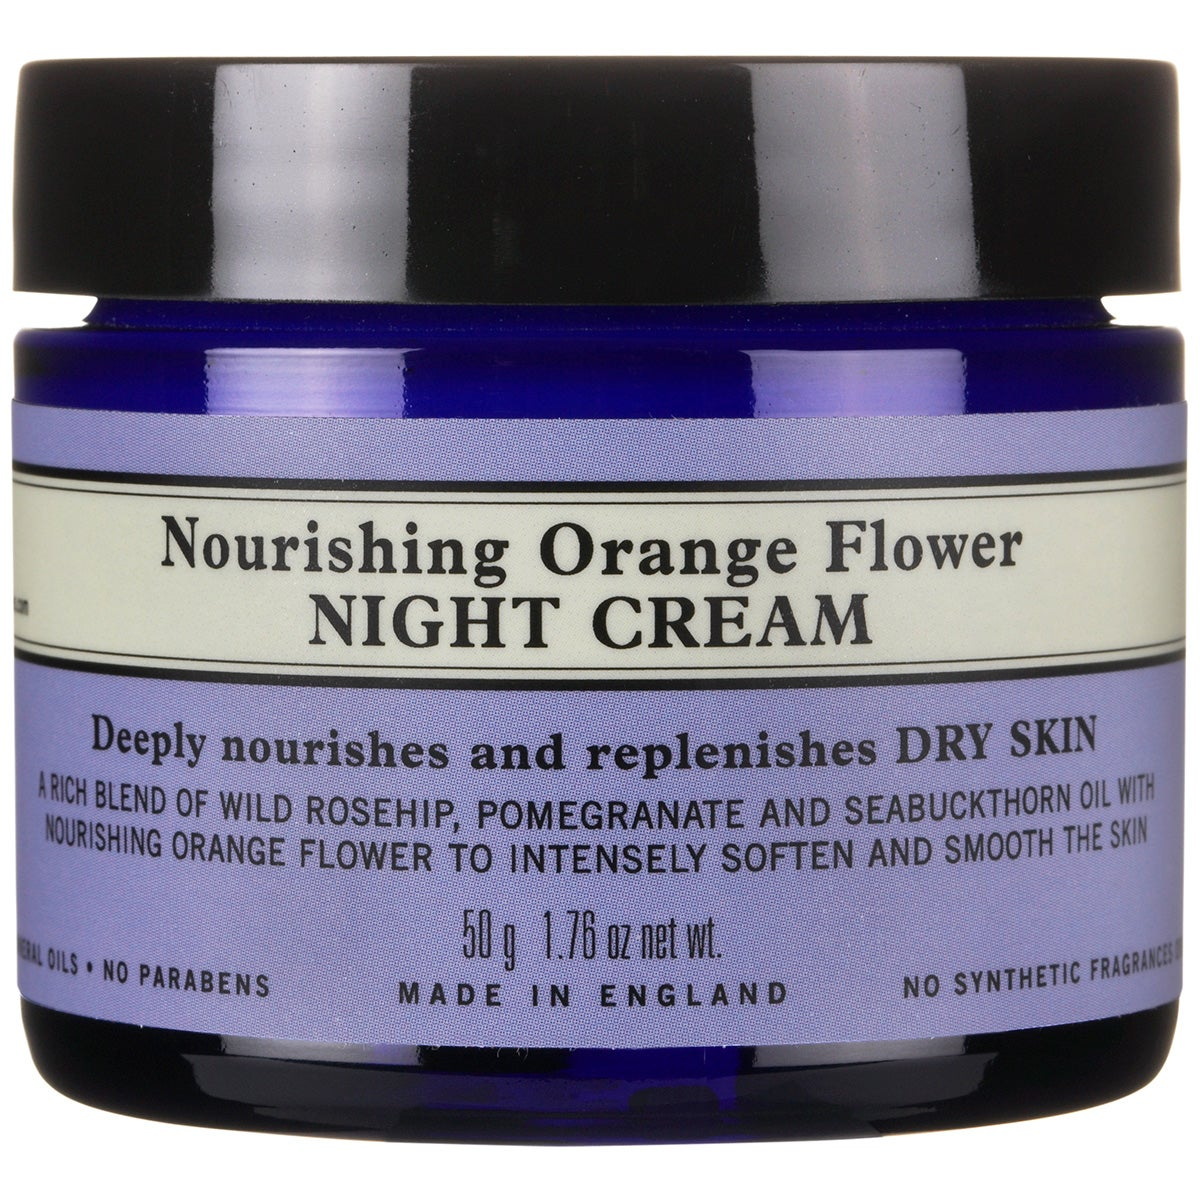 Neal's Yard Remedies Nourishing Orange Flower Night Cream